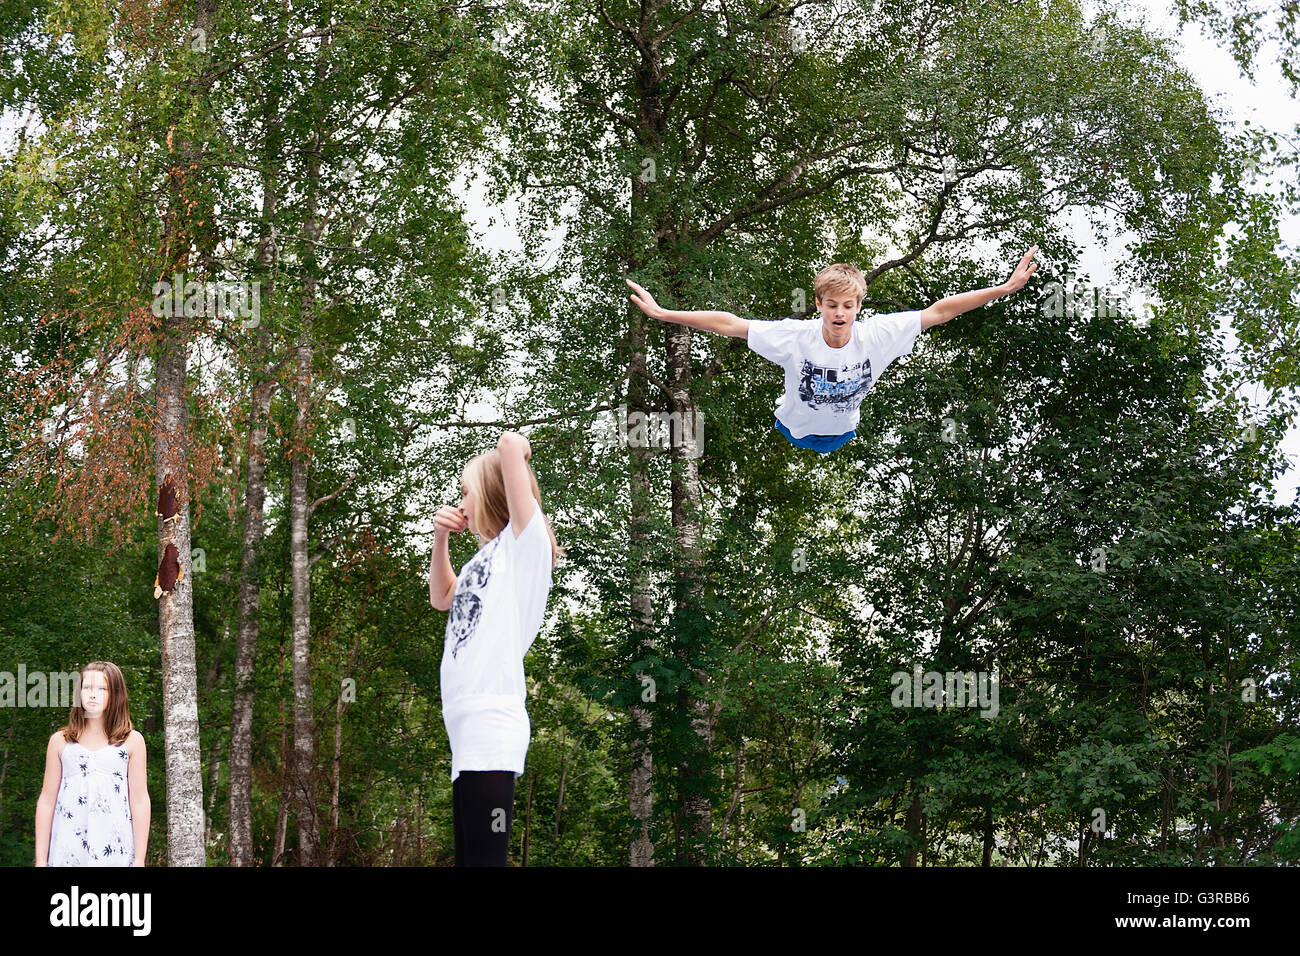 Sweden, Vastmanland, Bergslagen, Hallefors, Nygard, Children (10-11, 12-13, 14-15) against green trees - Stock Image